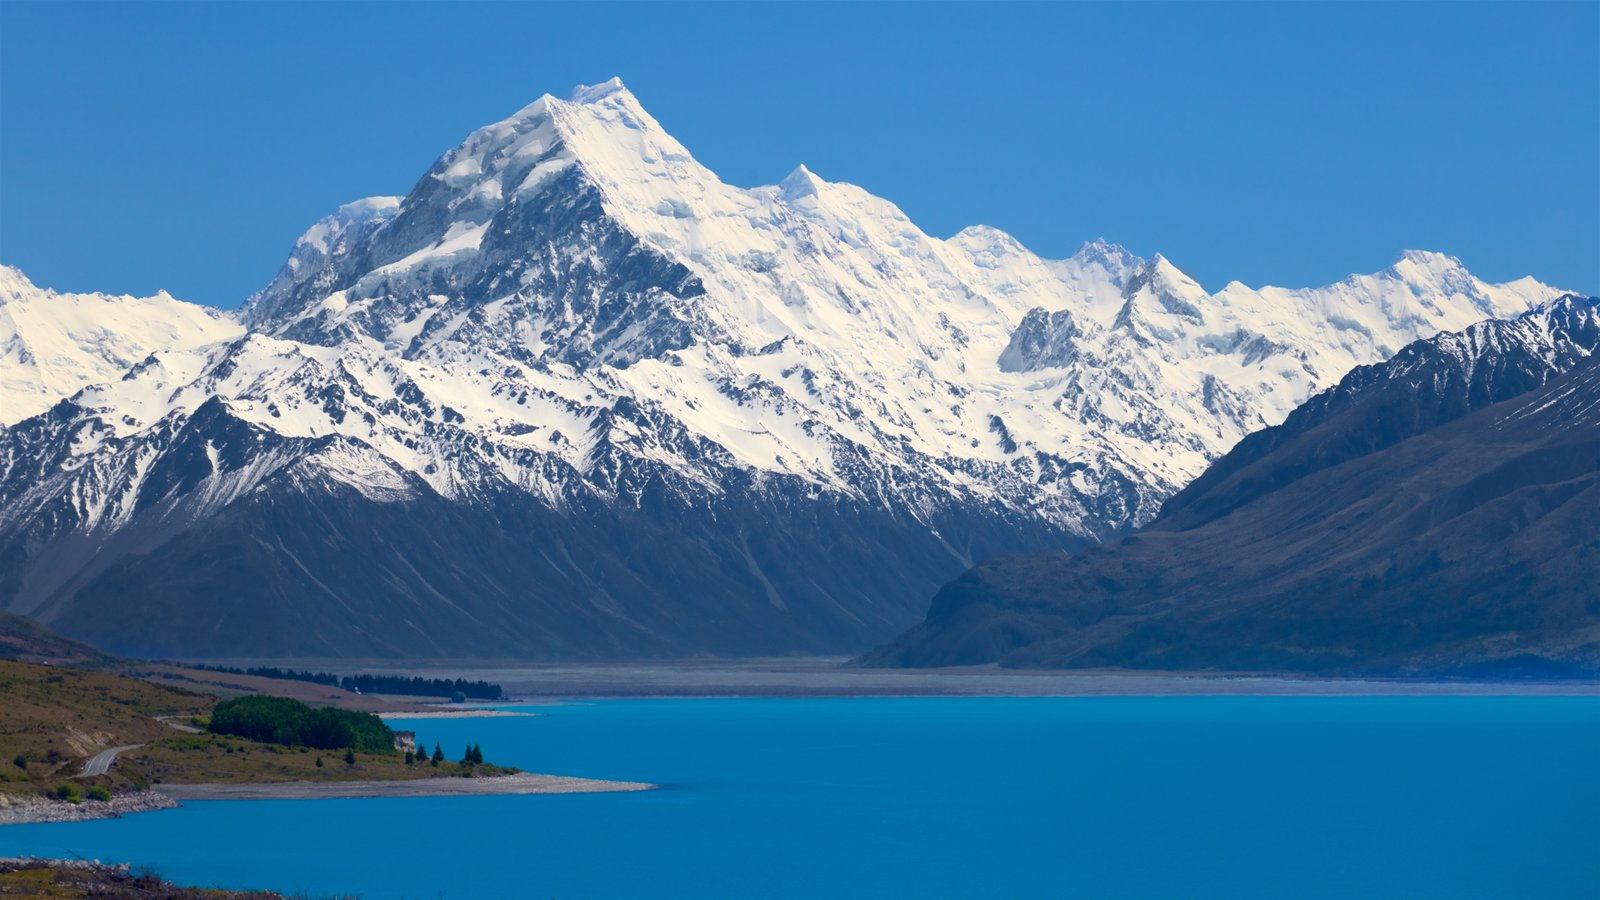 Mount Cook National Park featuring mountains, snow and a lake or waterhole